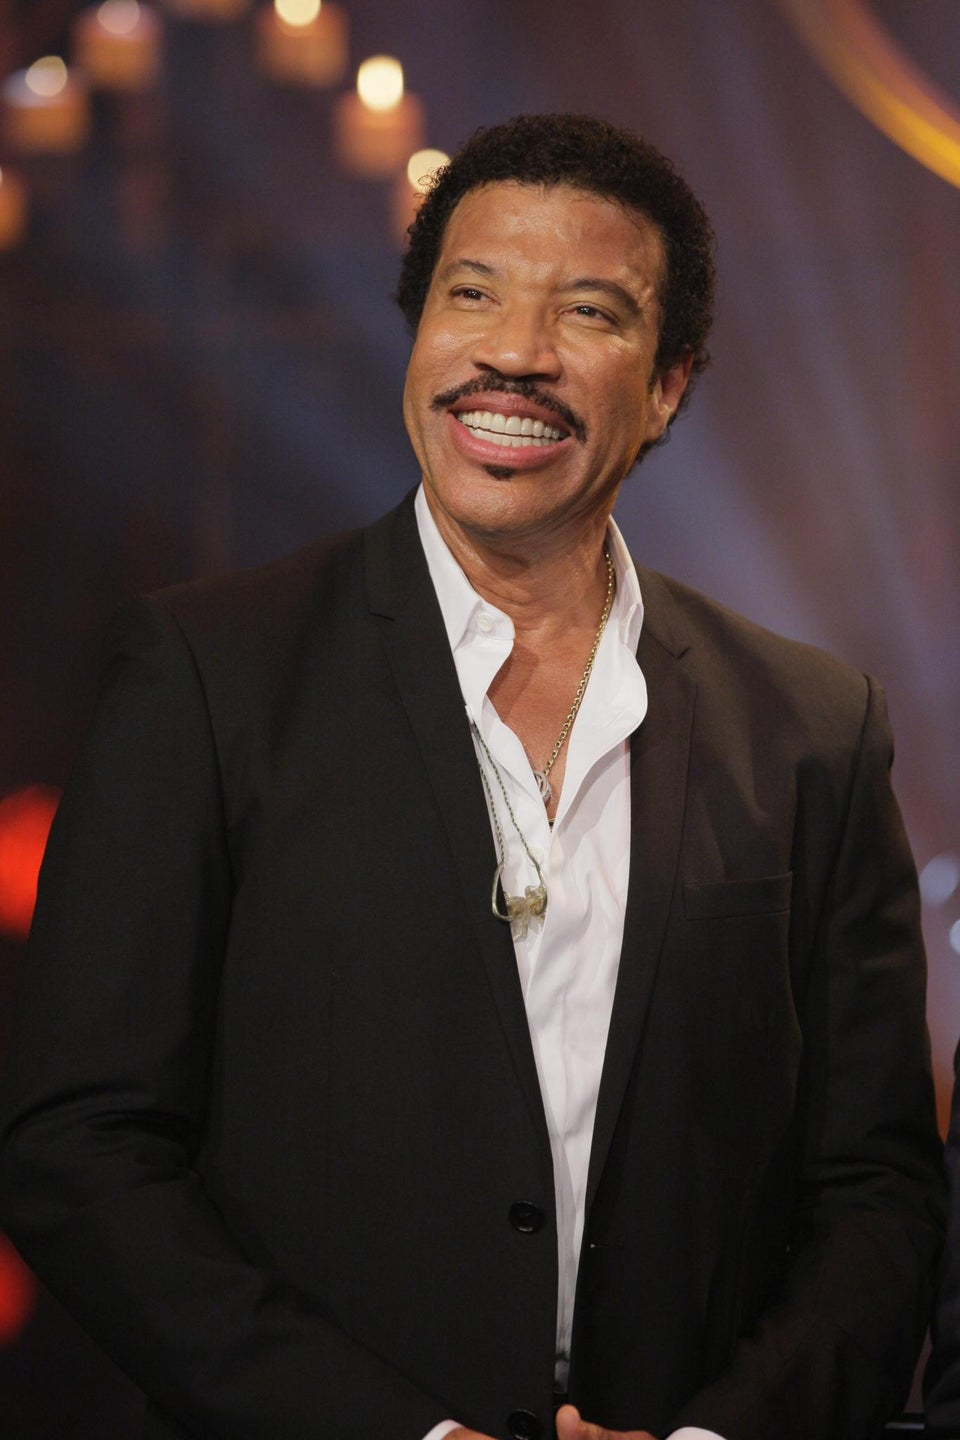 Lionel Richie, Mary J. Blige and Erykah Badu Added to 2014 ESSENCE Festival Lineup